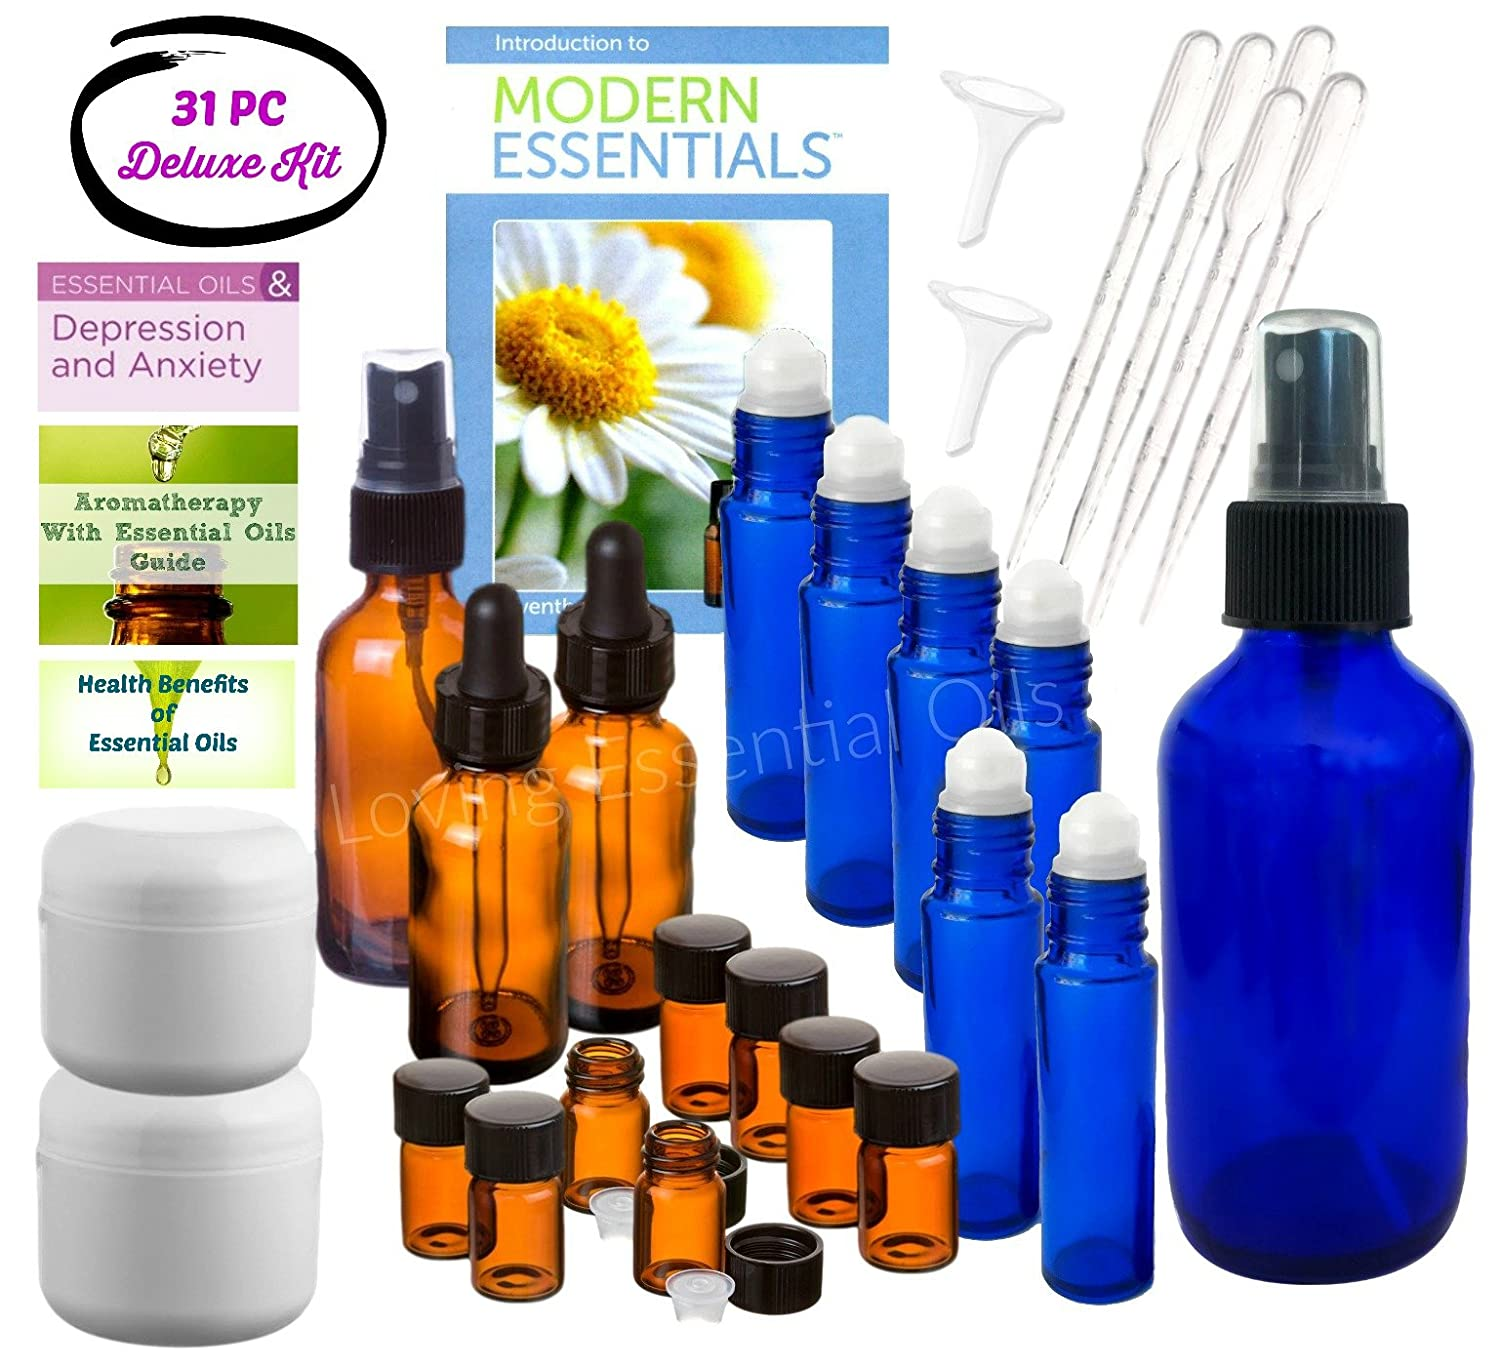 31 piece Aromatherapy Kit with Essential Oil Guide Reference Material